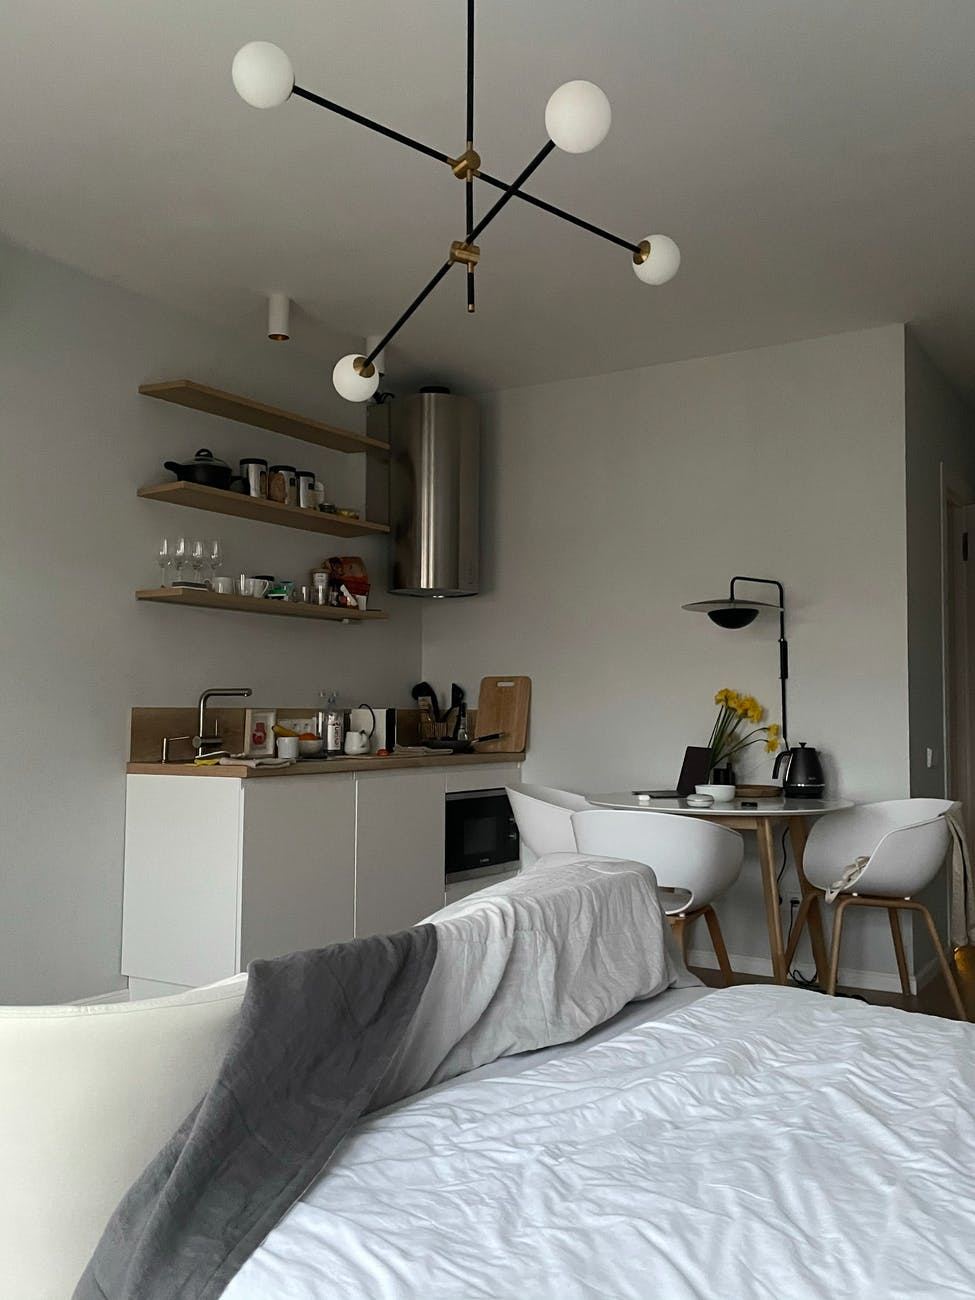 stylish interior of studio apartment with unmade bed